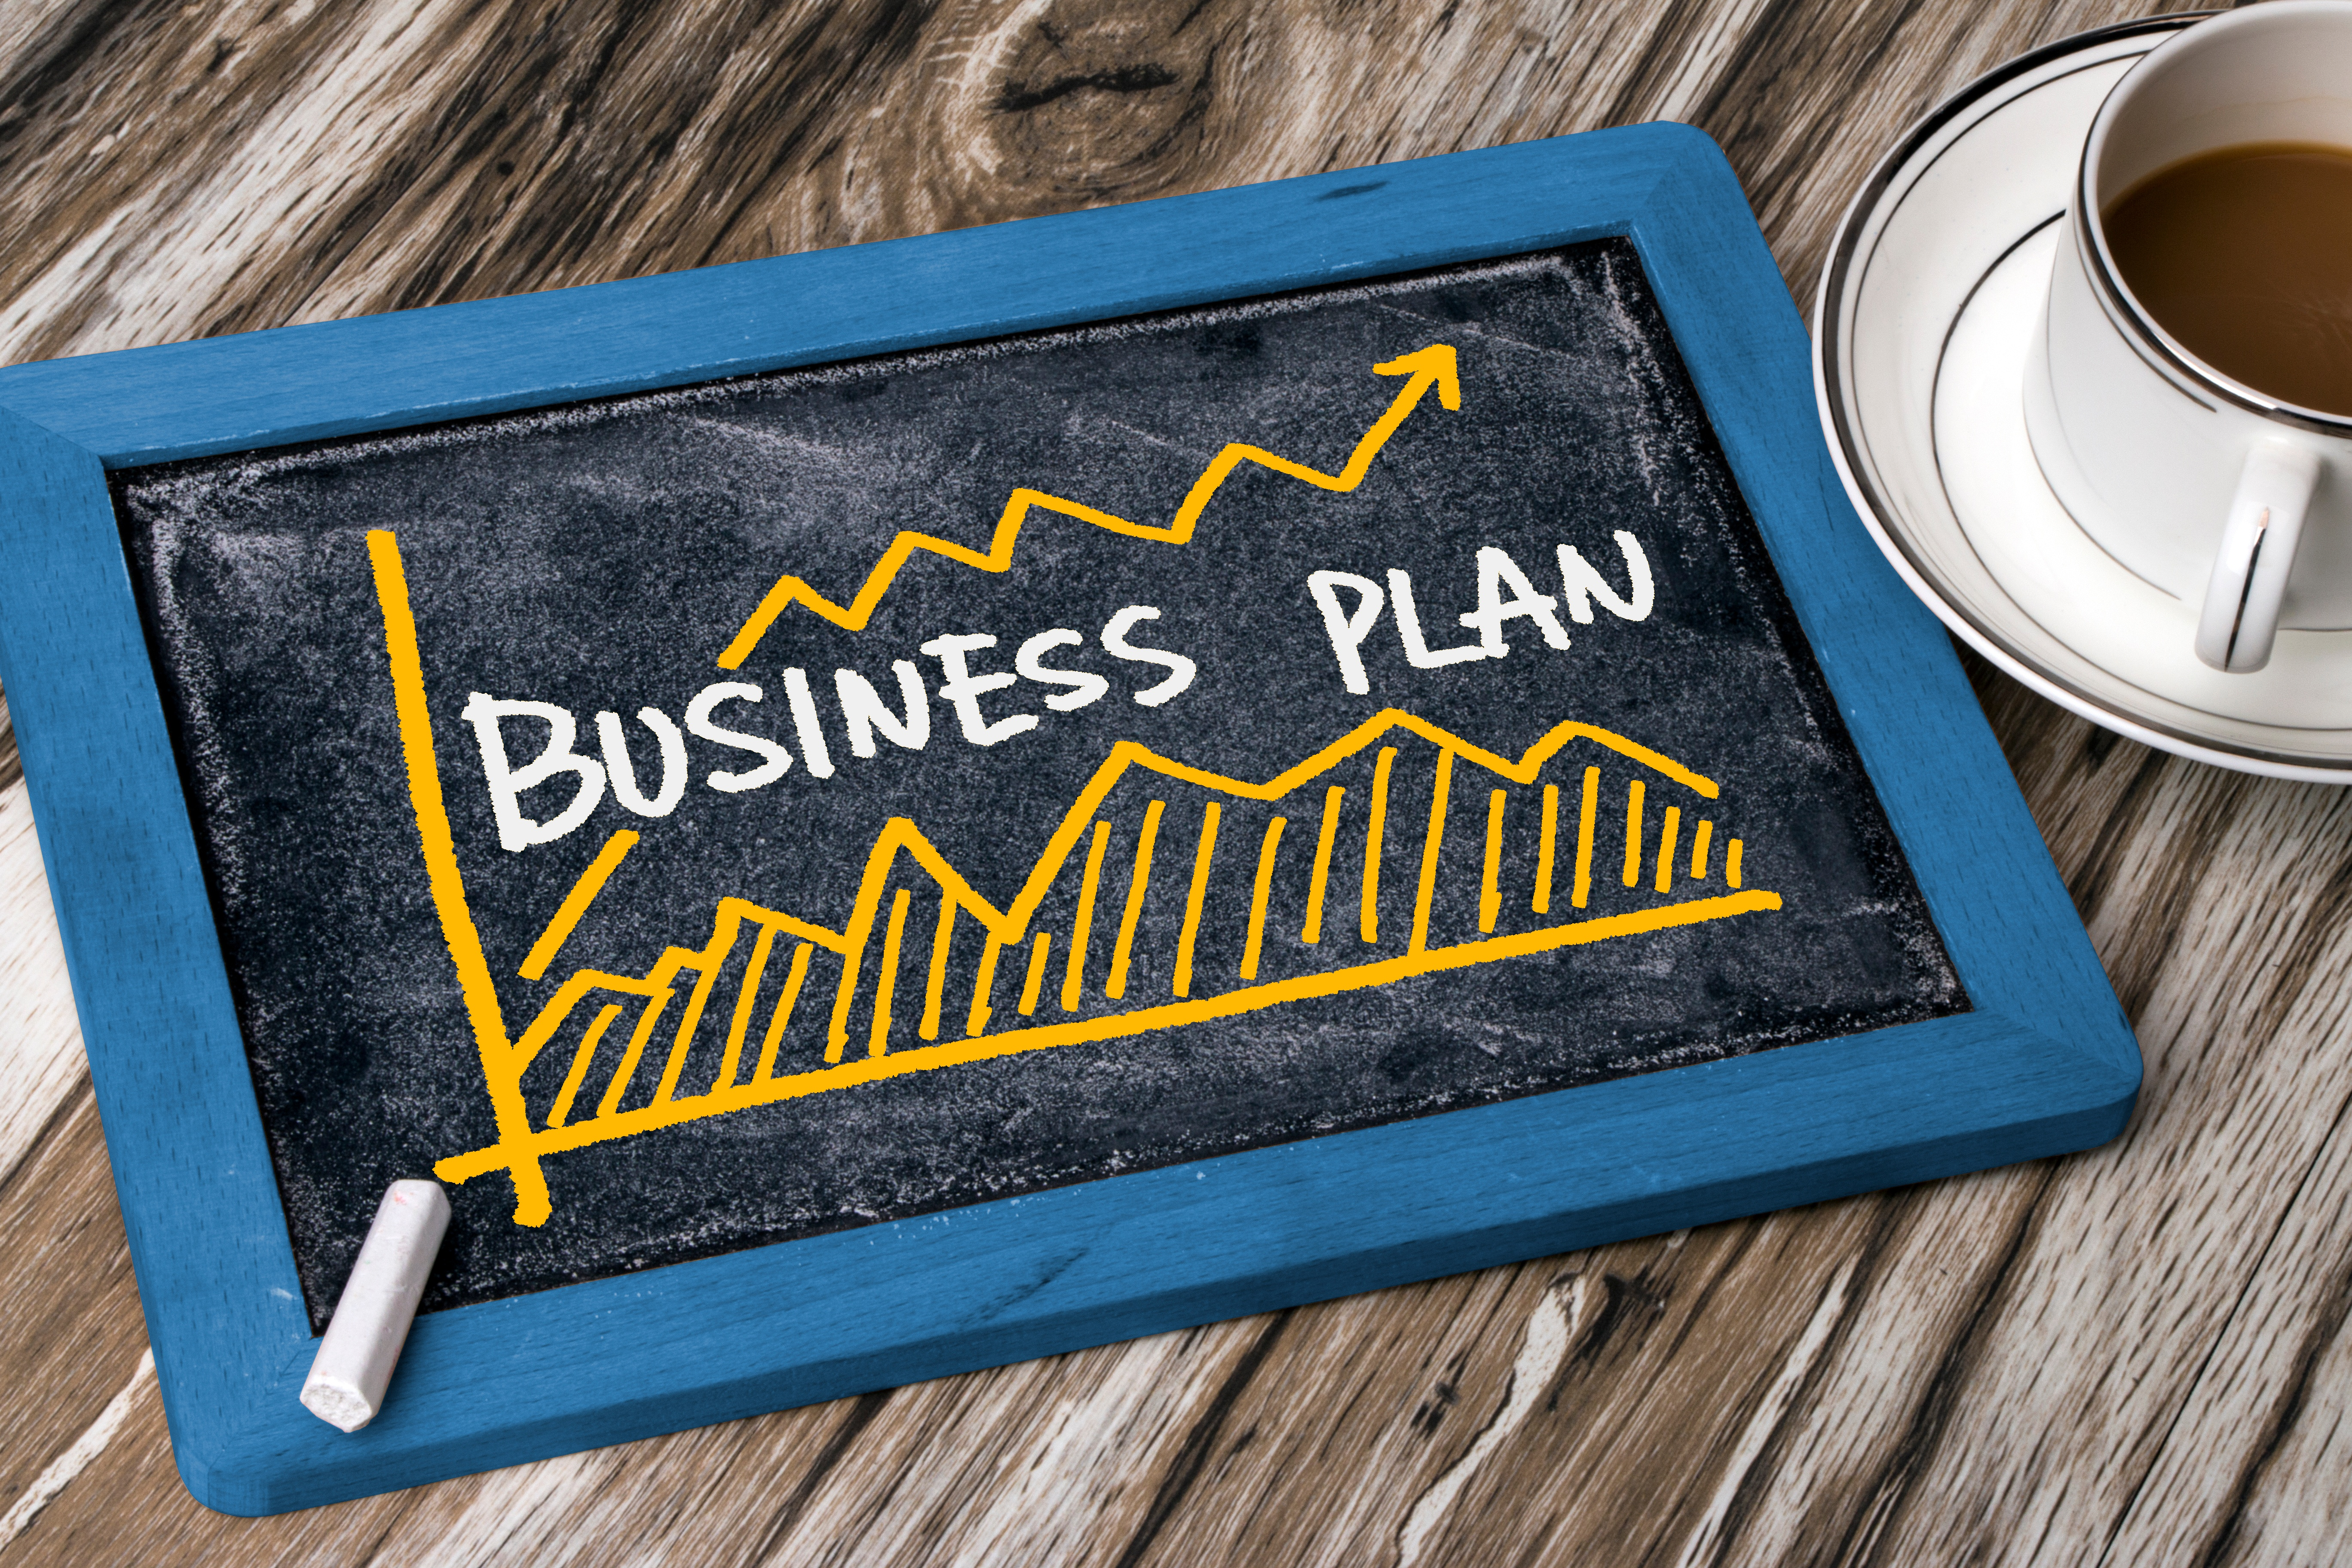 5 Signs Your Business is Ready for Expansion